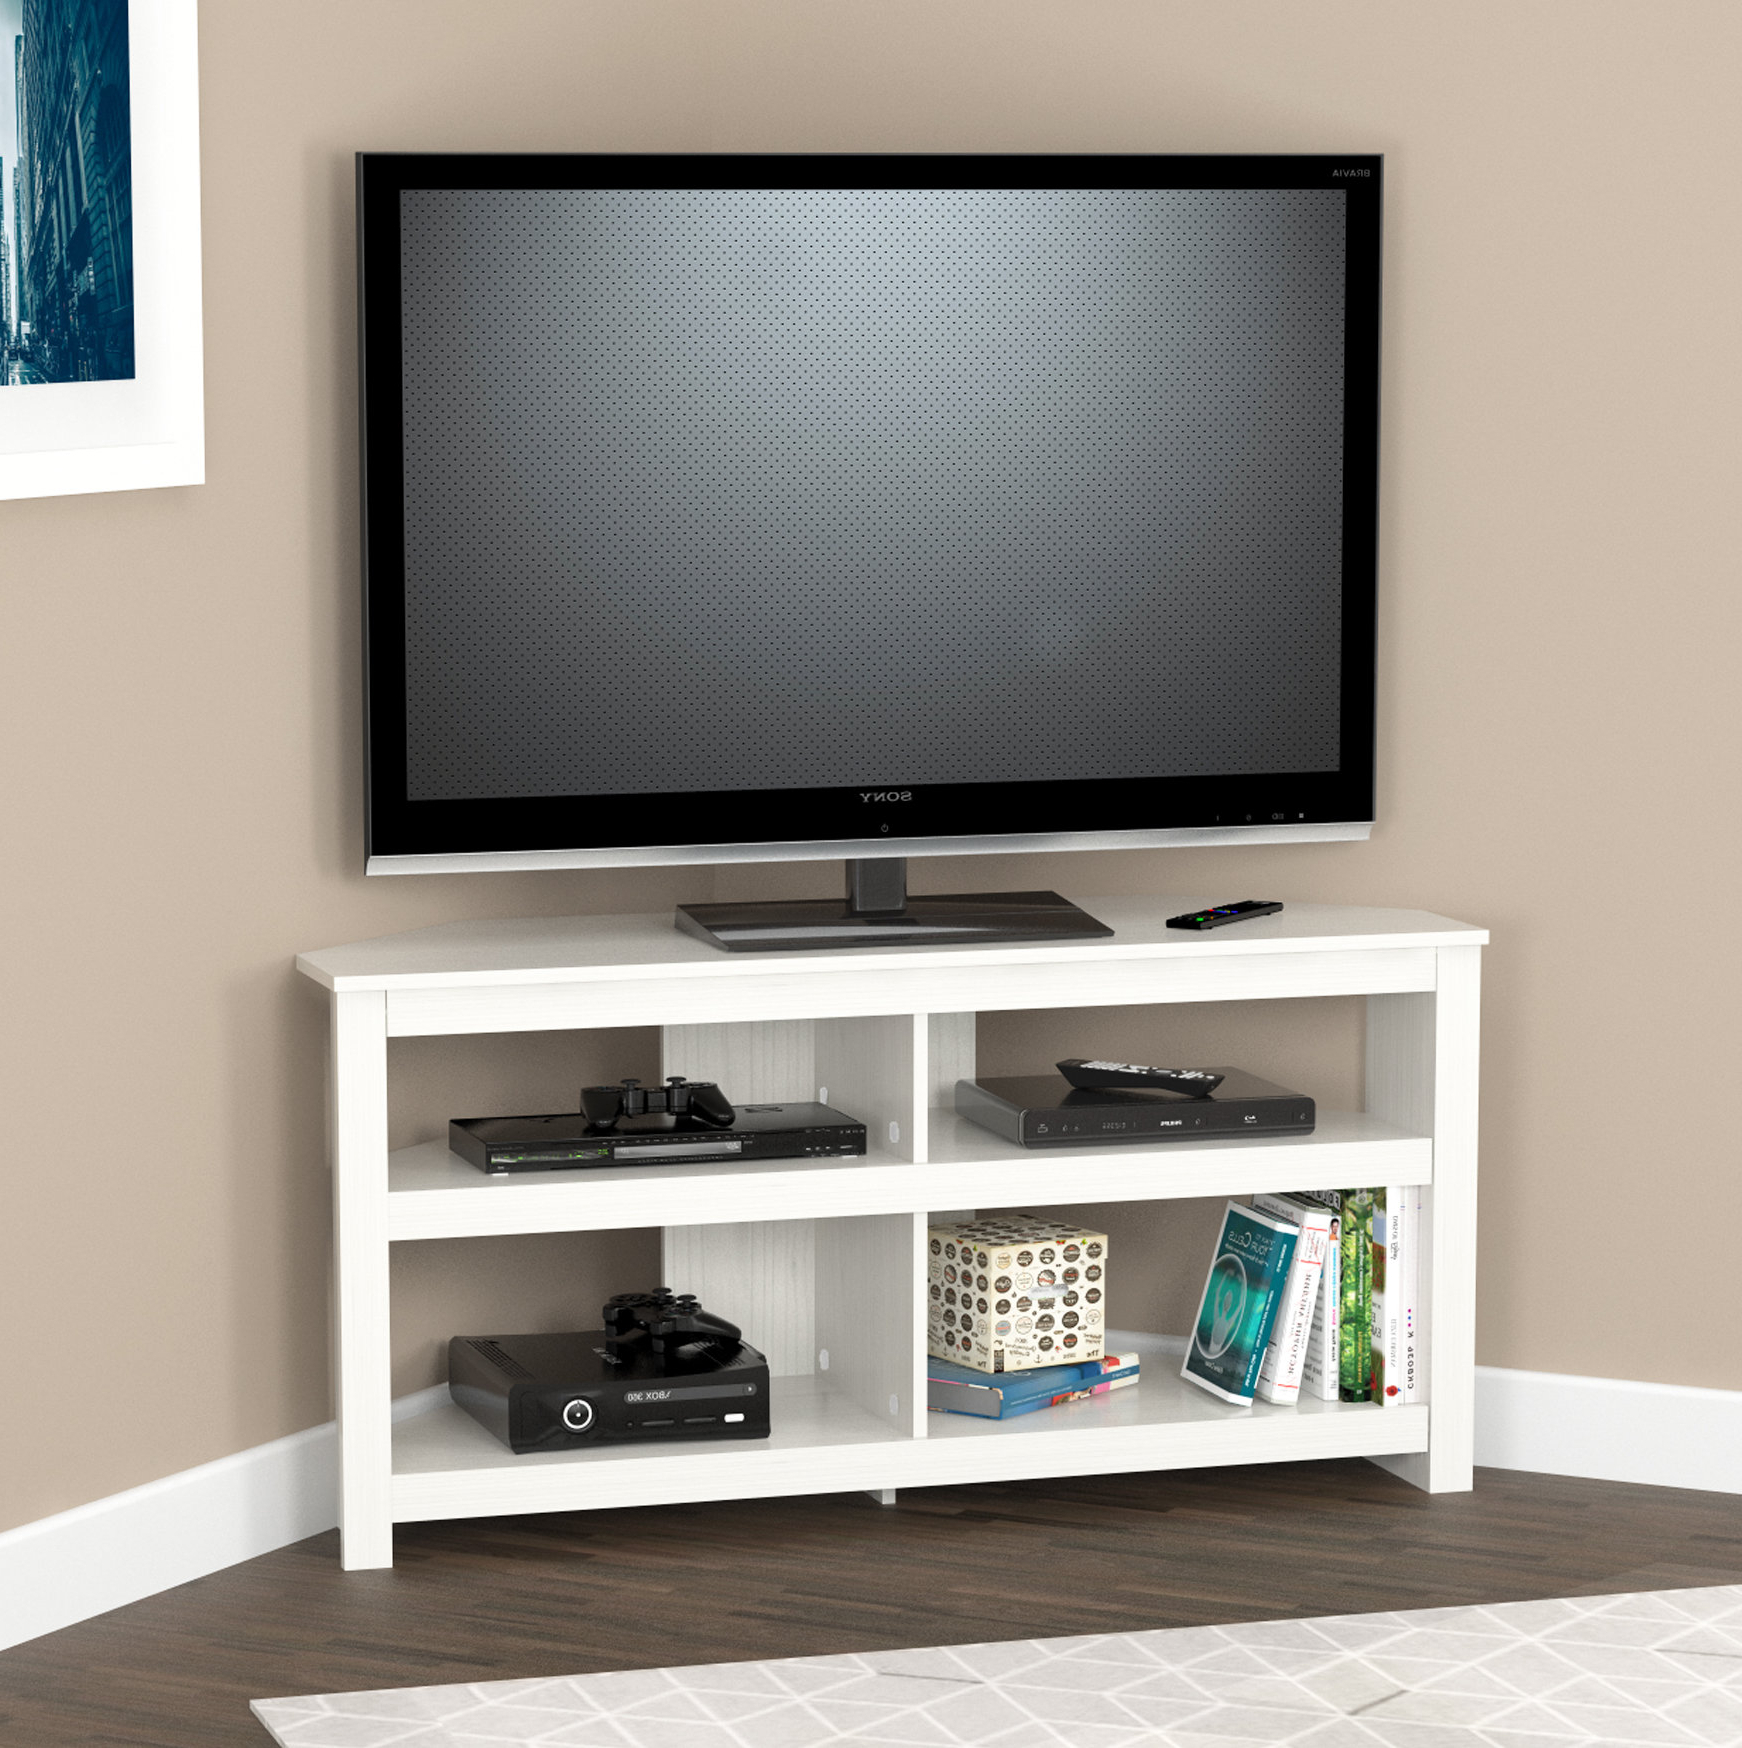 Corner Tv Stands For 46 Inch Flat Screen Pertaining To Most Up To Date Corner Tv Stands You'll Love (View 6 of 20)